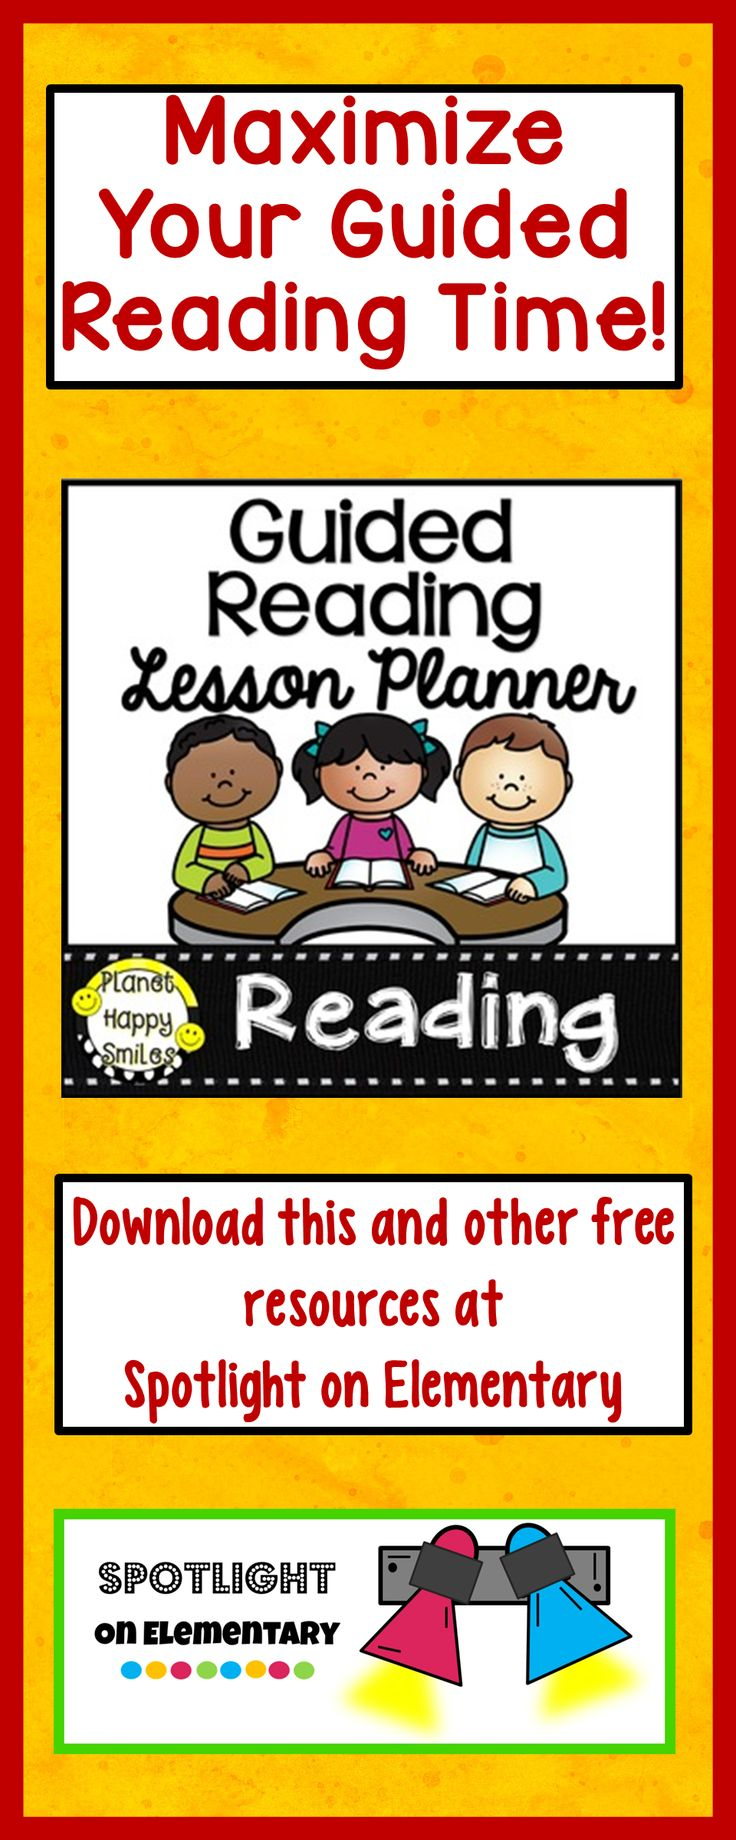 This FREE lesson planner will make your guided reading time more efficient!